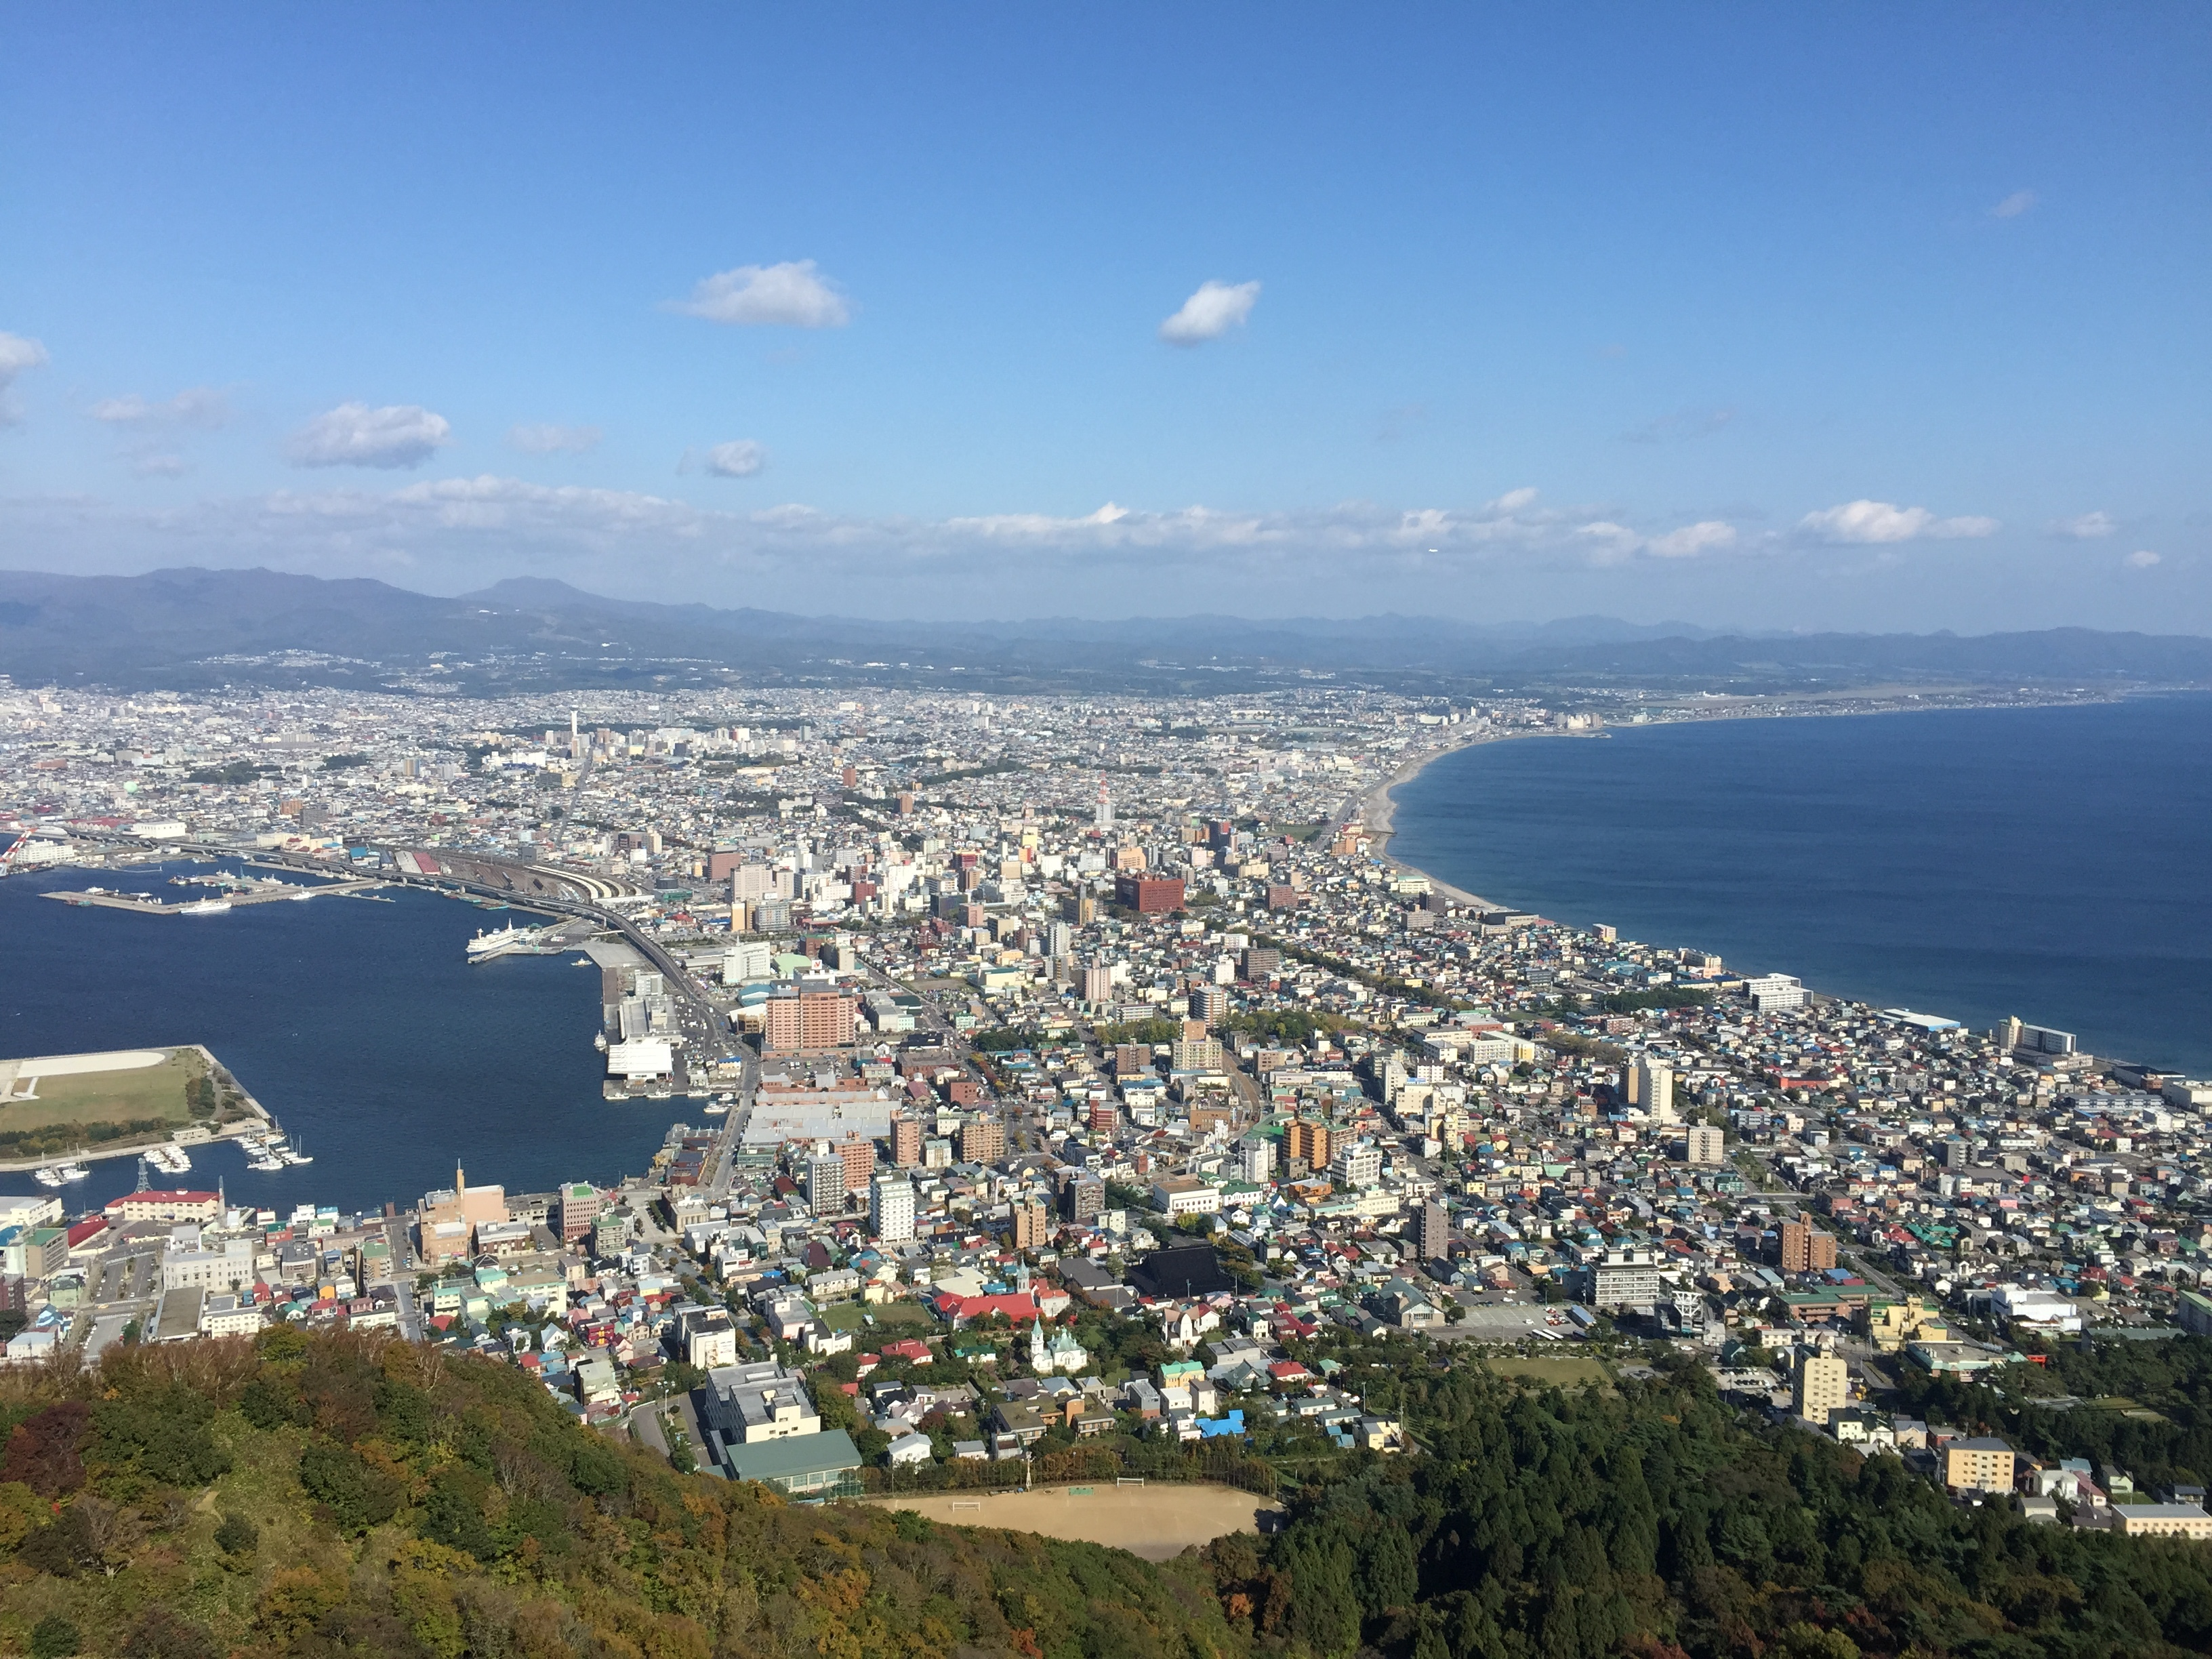 View from mt. hakodate